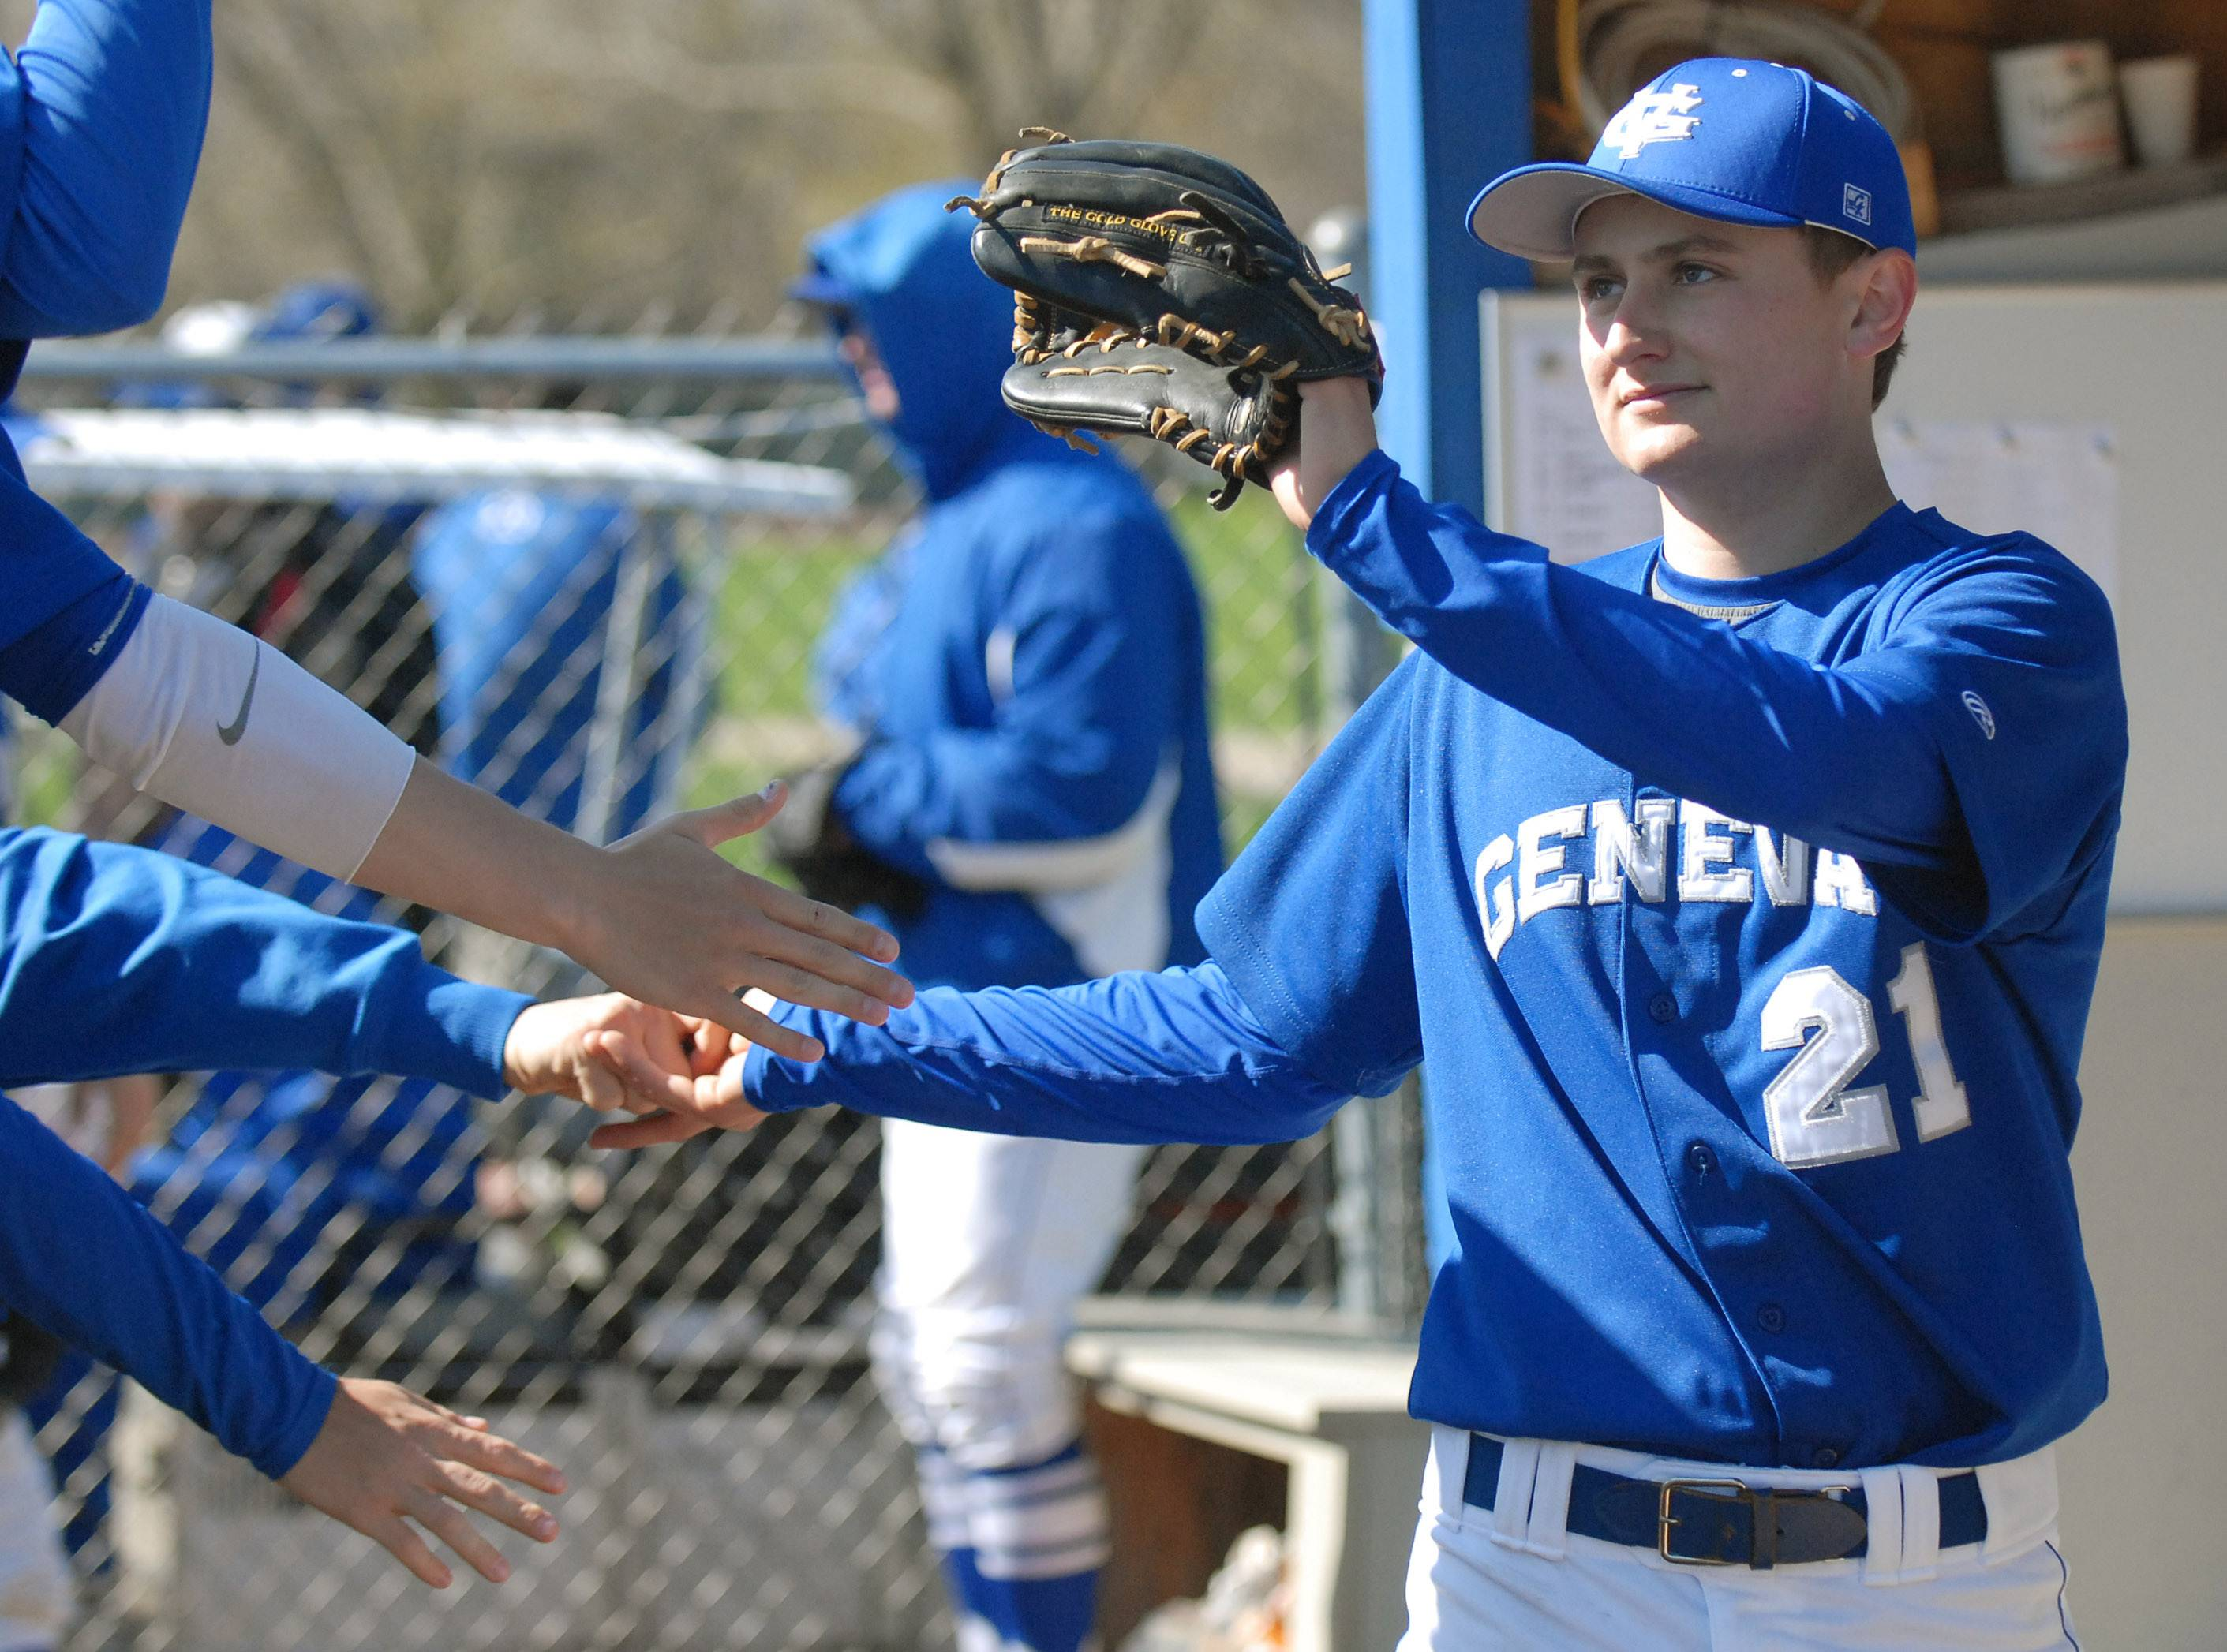 Teammates praise pitcher Geneva's Max Novak in the fourth inning as he returns to the dugout on Saturday, May 3.